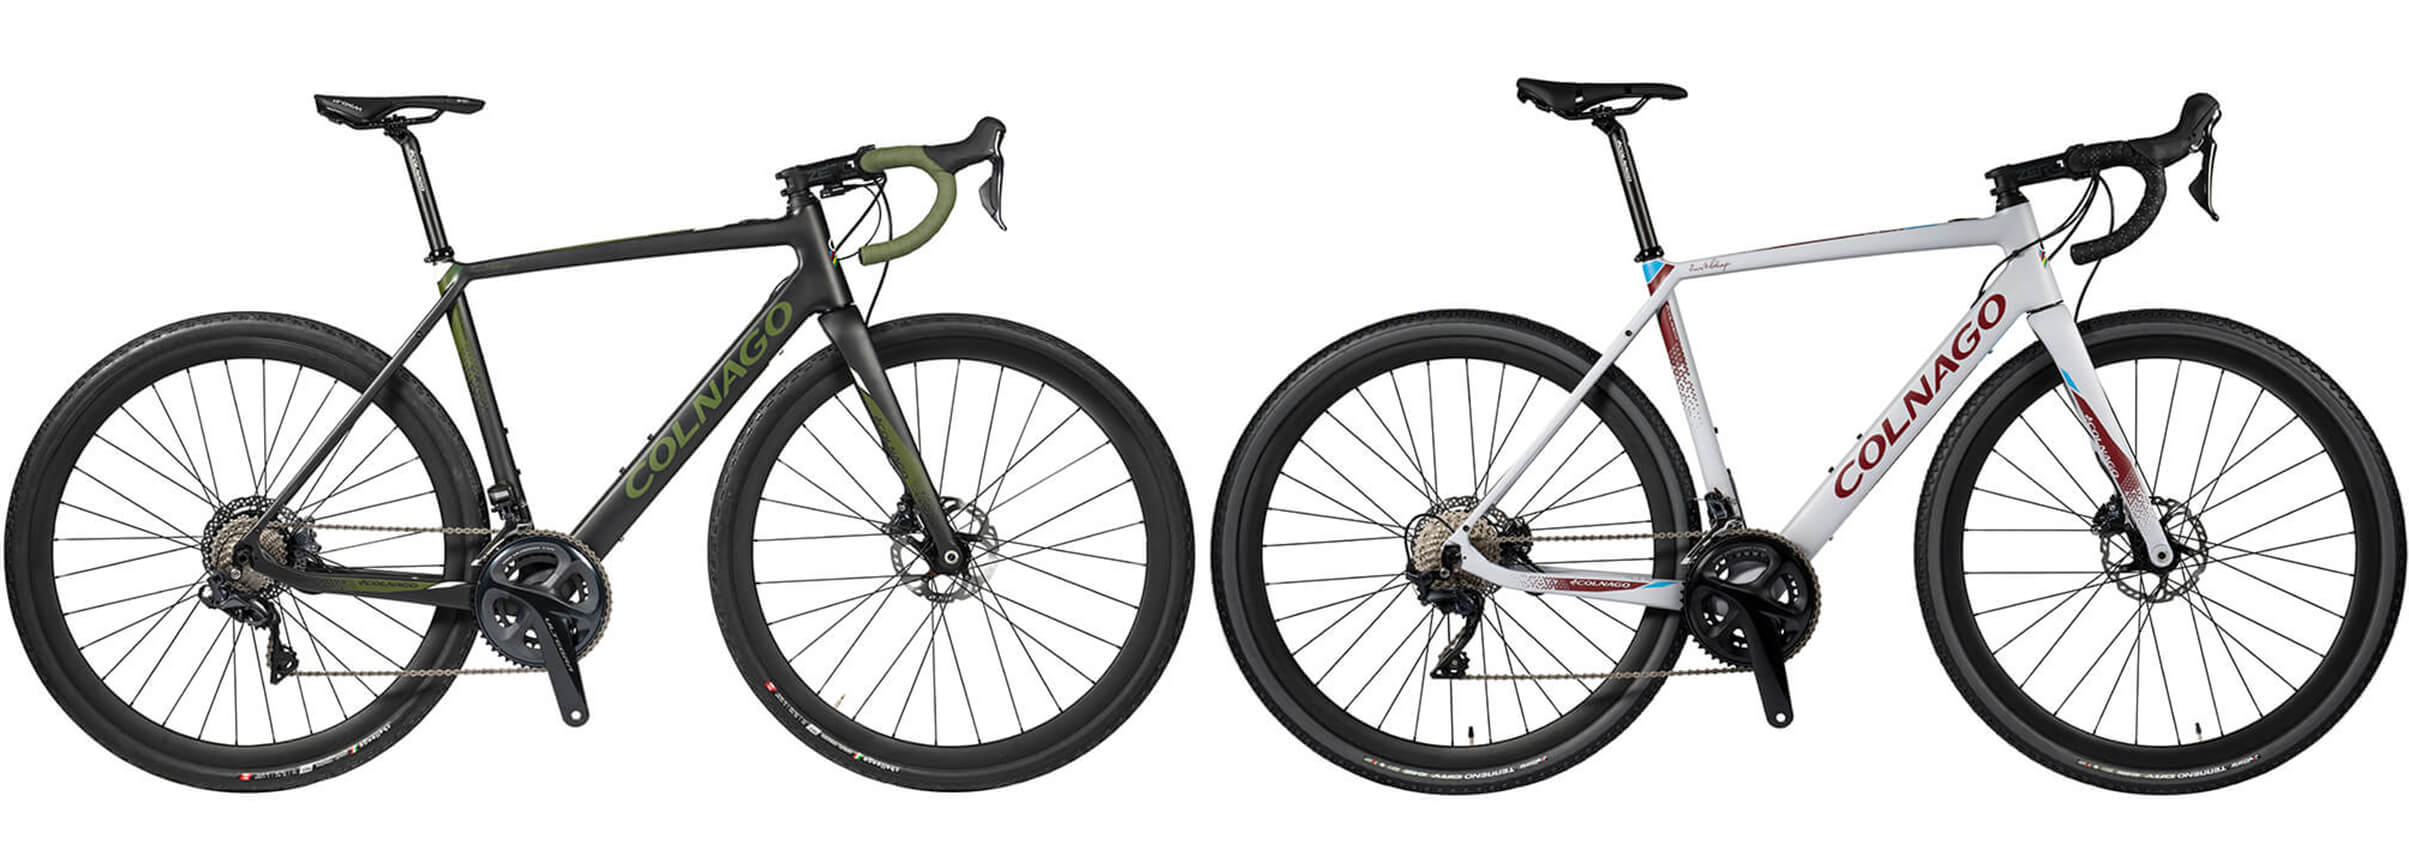 2020 Colnago e-GRV Colors - Contender Bicycles